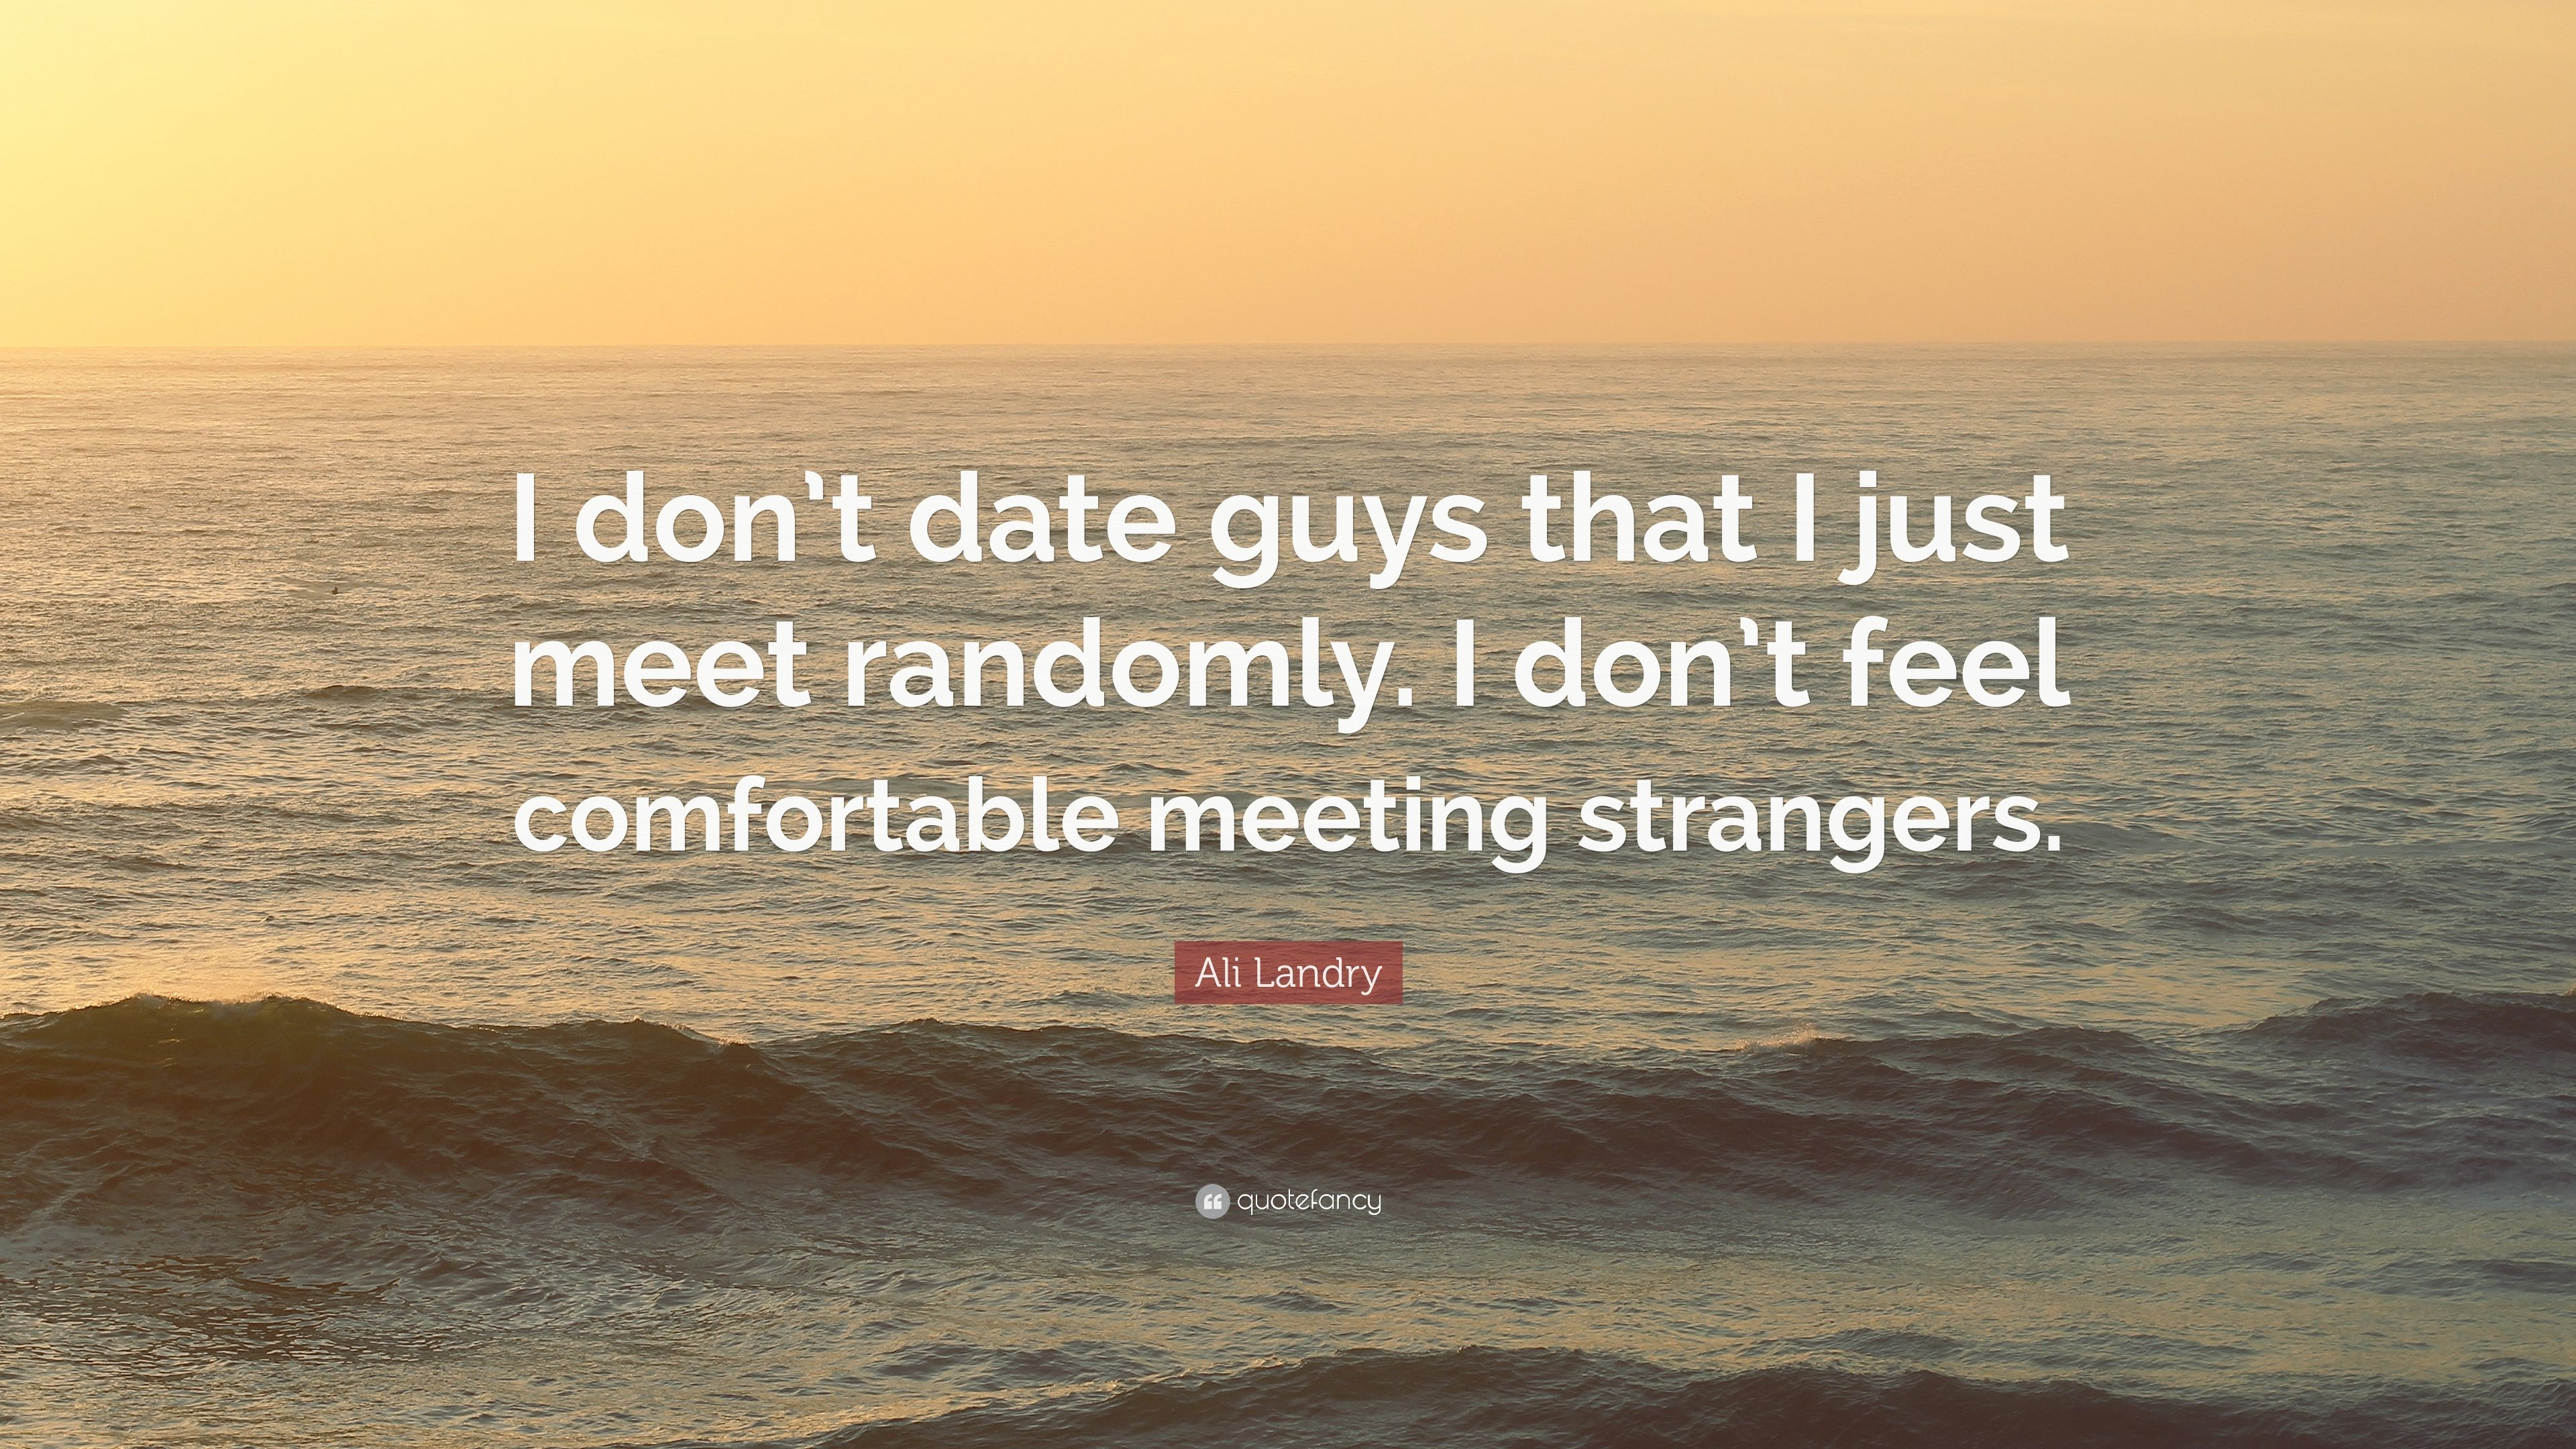 Taking it slow dating quotes